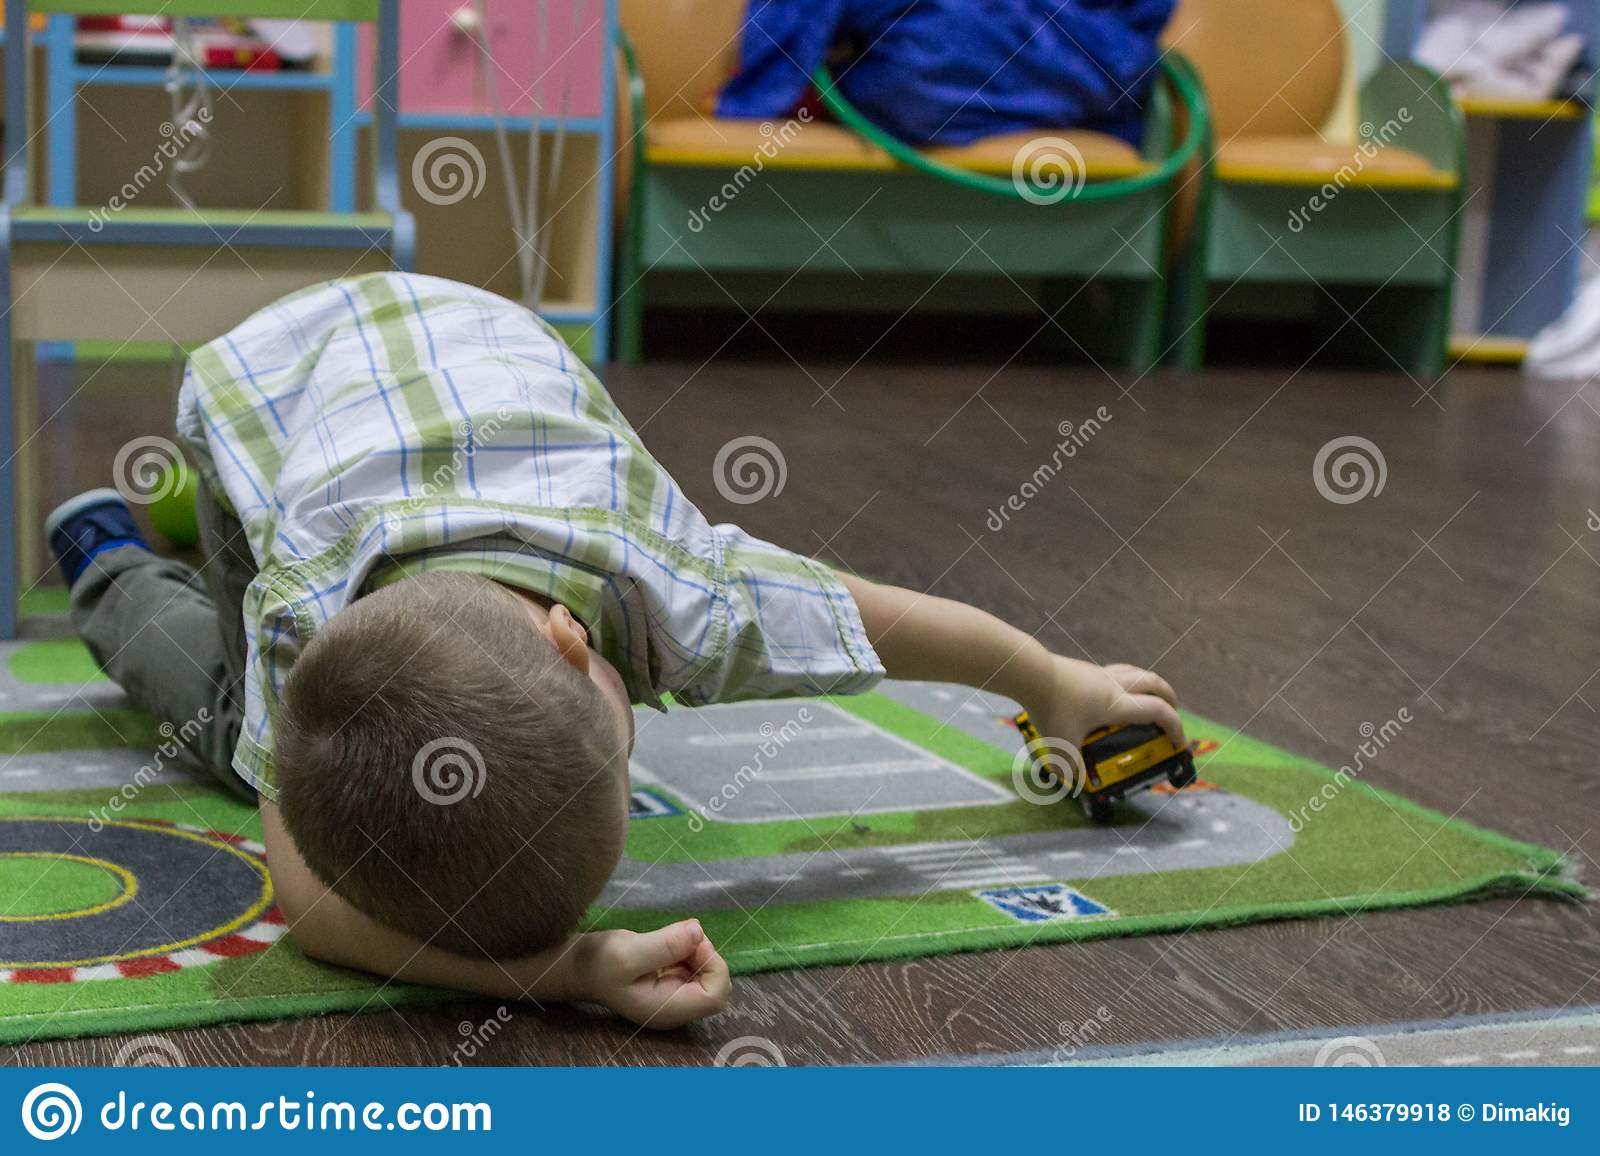 Little boy playing cars on the carpet. Entertainment of childhood.